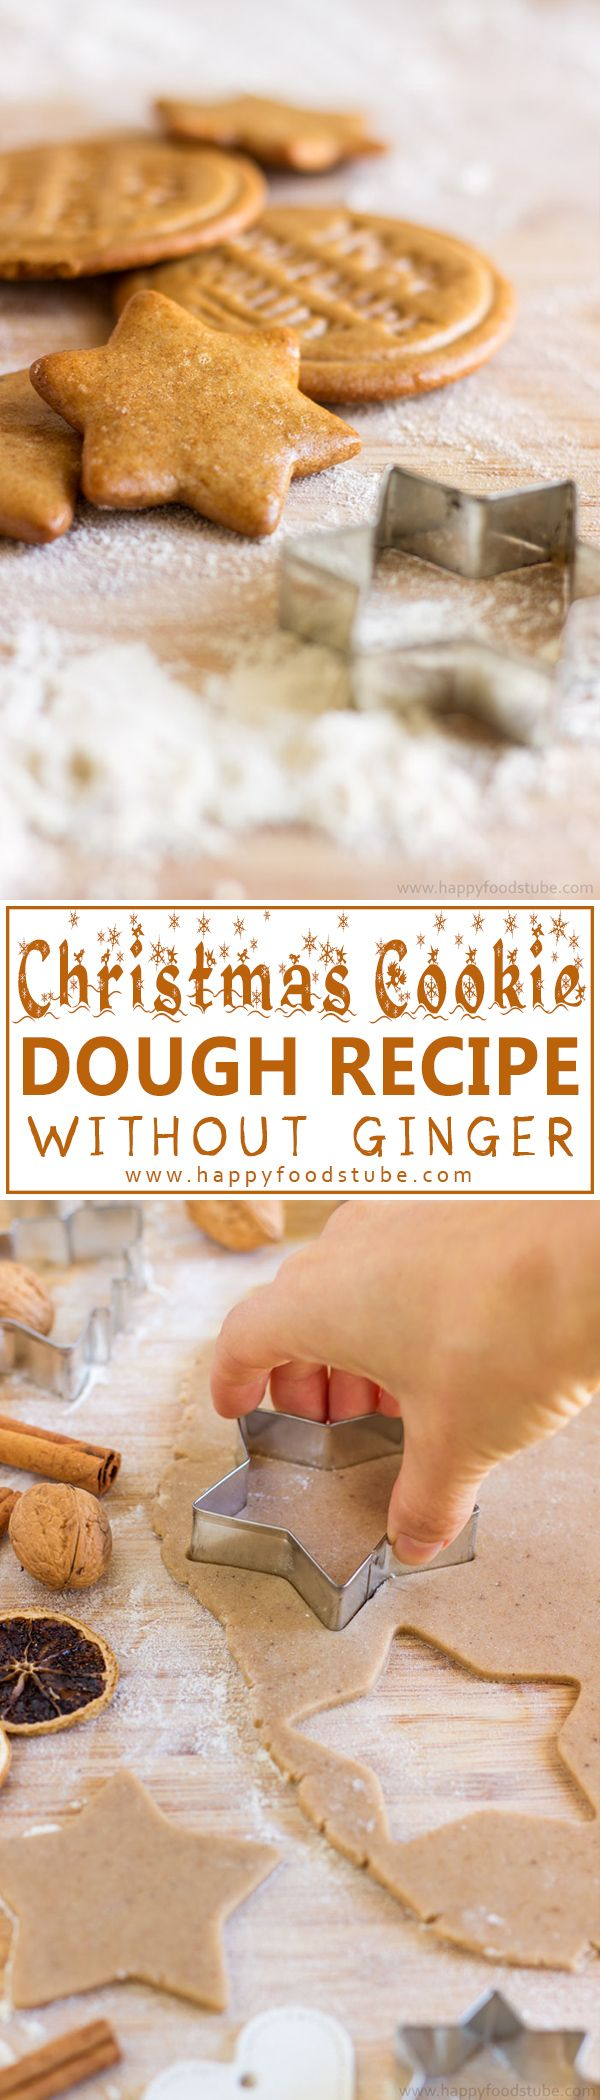 Best Christmas Cookie Dough Recipe without Ginger. Gingerbread cookies with honey, cinnamon and cloves! Ready in 10 minutes! | happyfoodstube.com